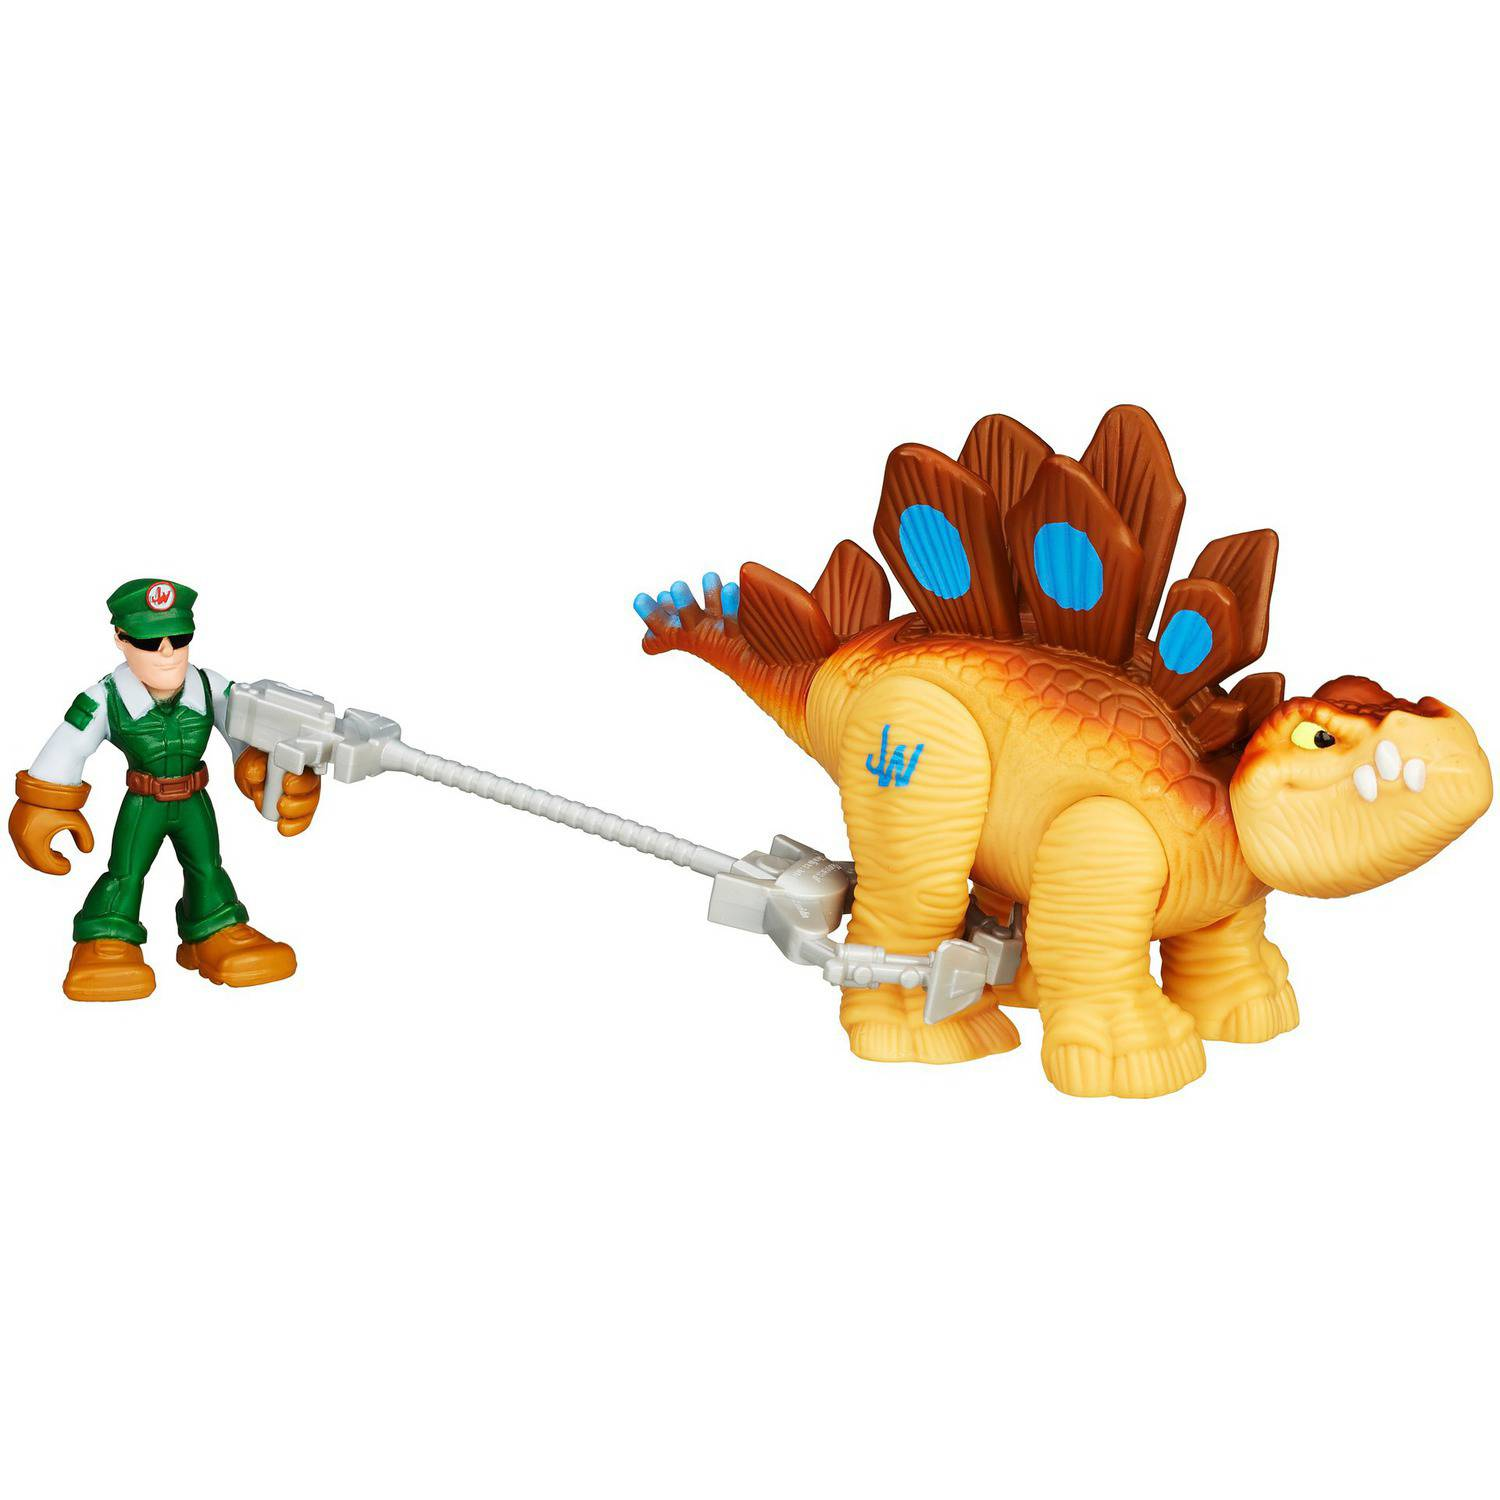 Playskool Heroes Jurassic World Tracker Stegosaurus Figure by Hasbro